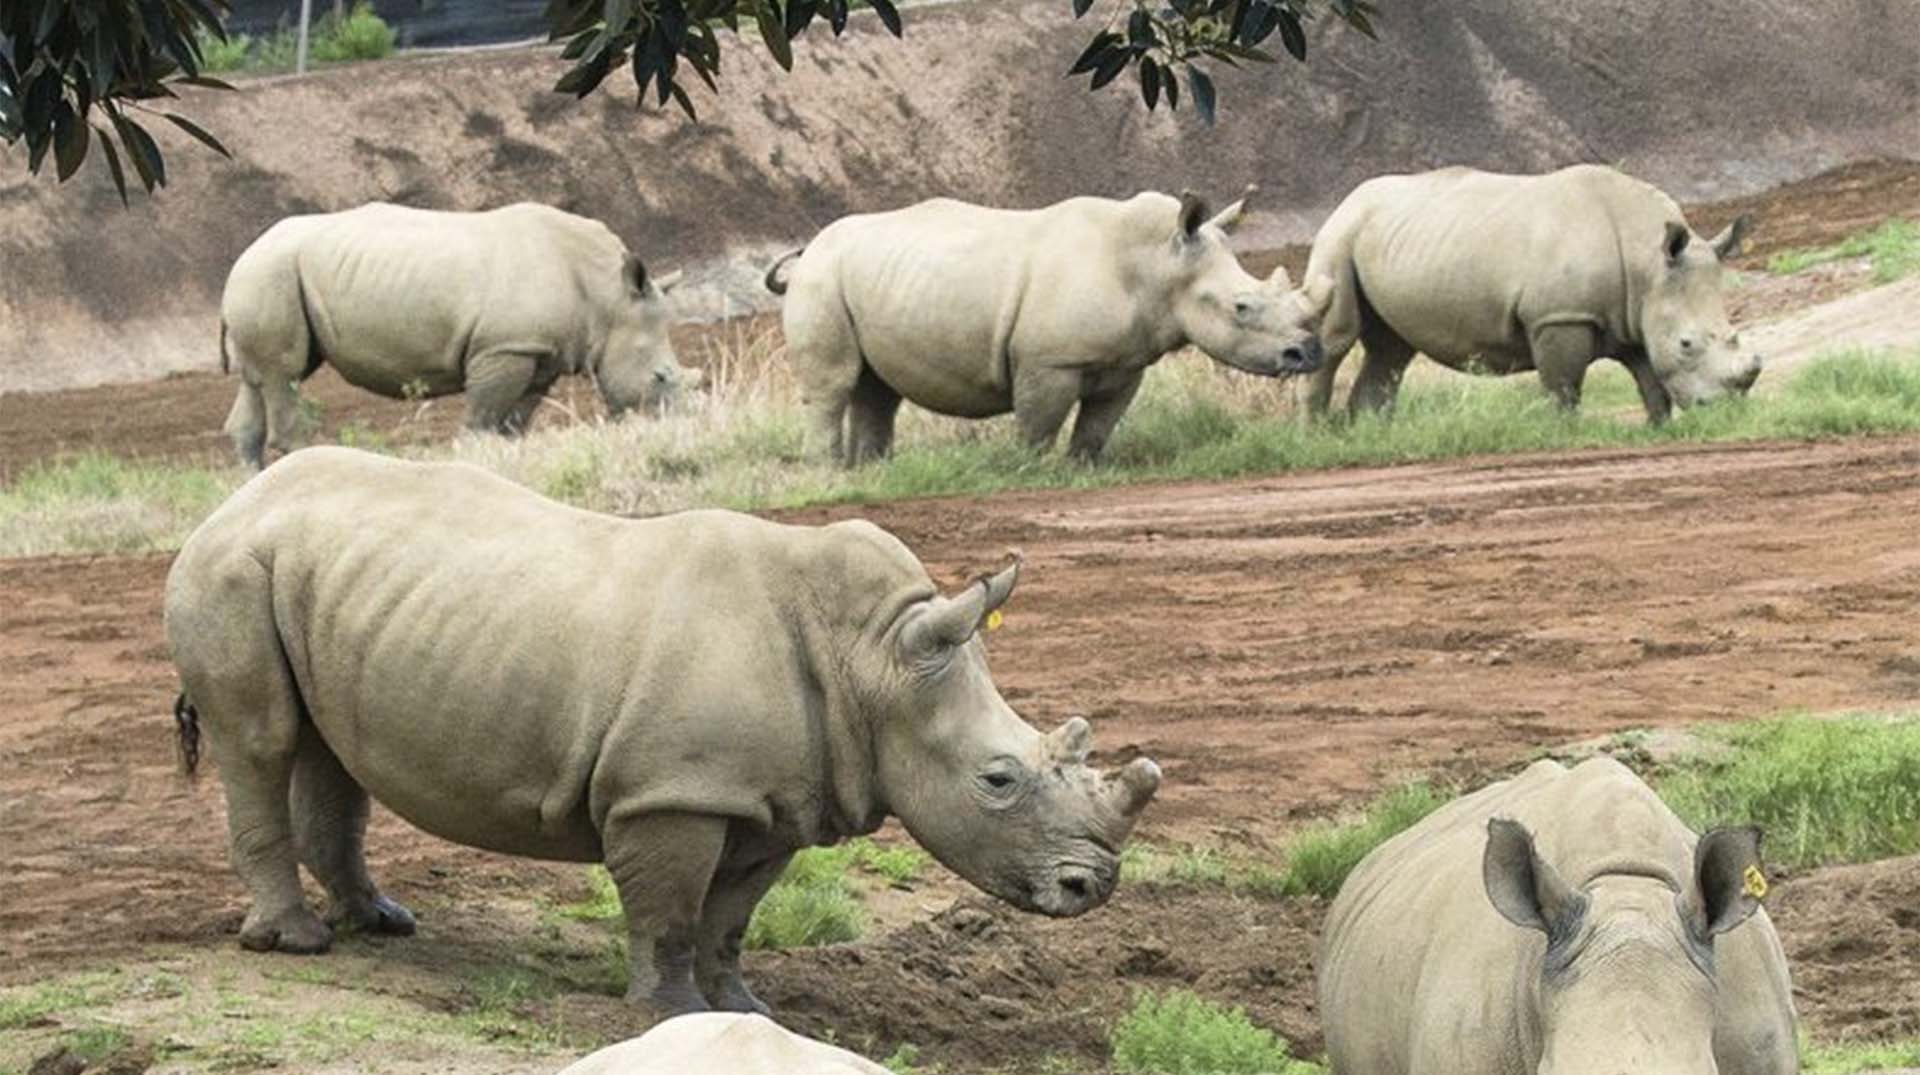 Five white rhinos in the field at the Safari Park's Nikita Kahn Rhino Rescue Center